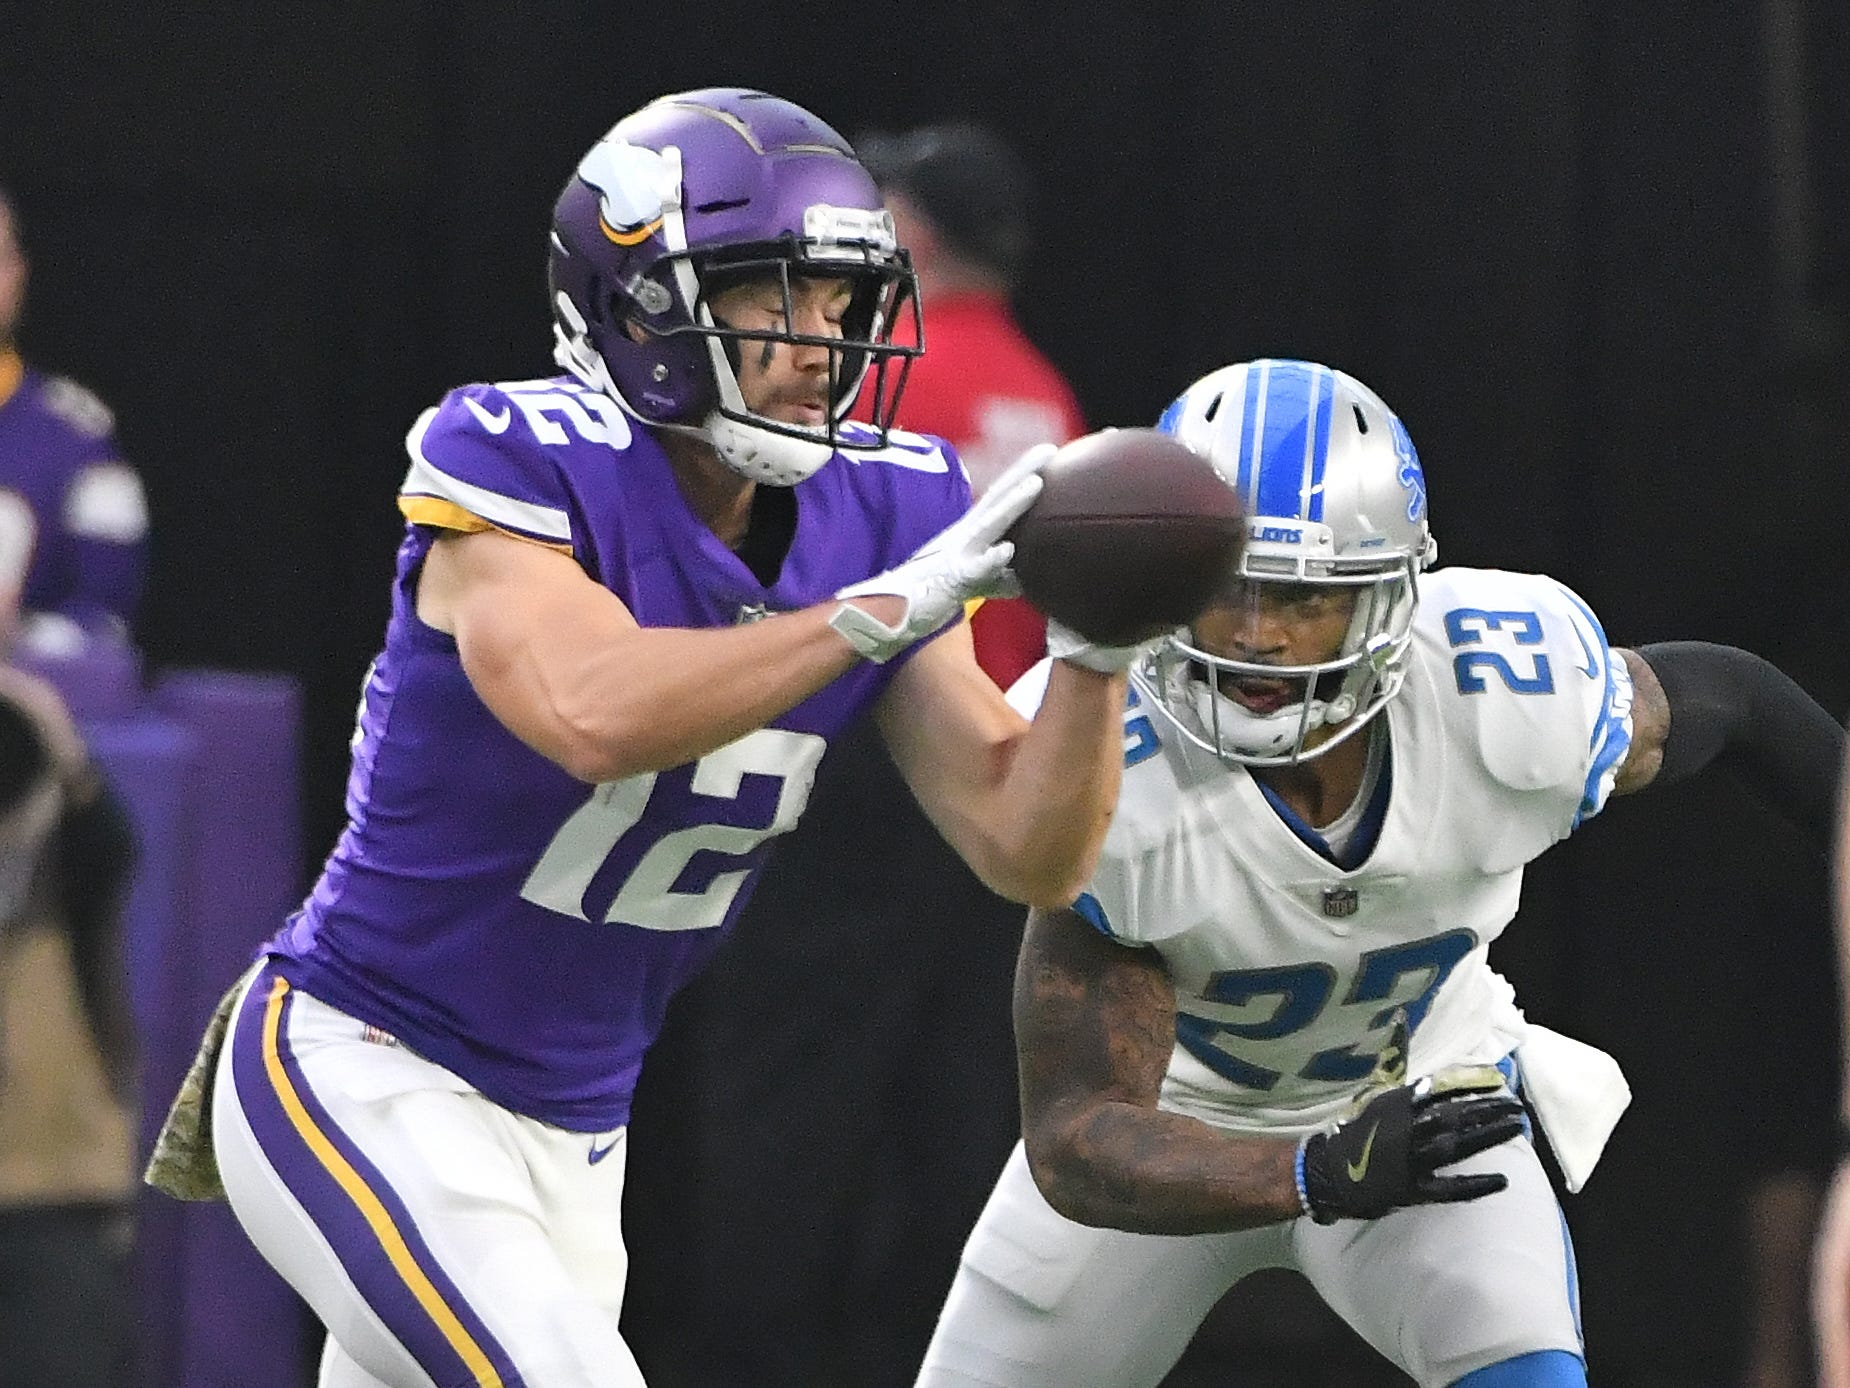 Vikings' Chad Beebe pulls in a reception in front of Lions' Darius Slay in the first quarter.